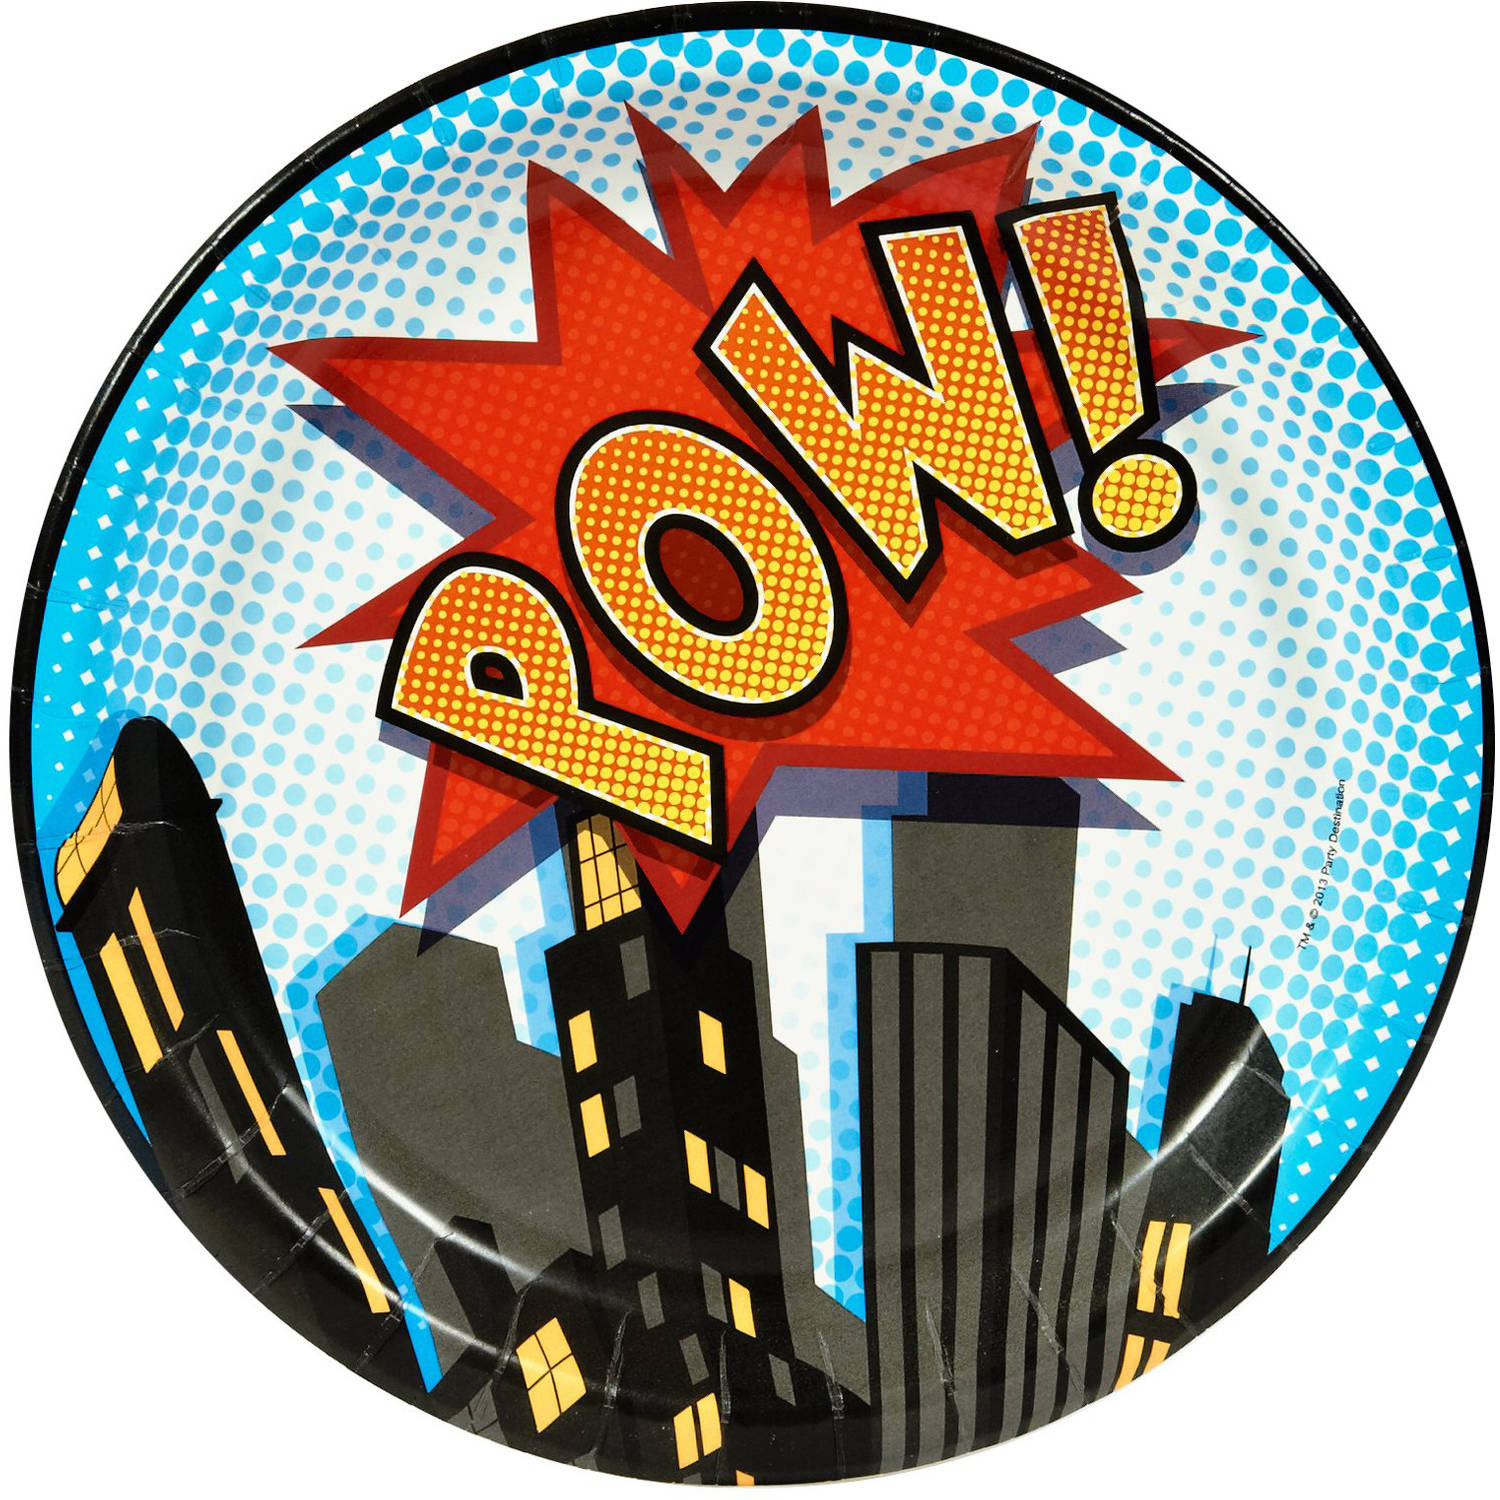 Superhero Comics Dinner Plates, 8pk